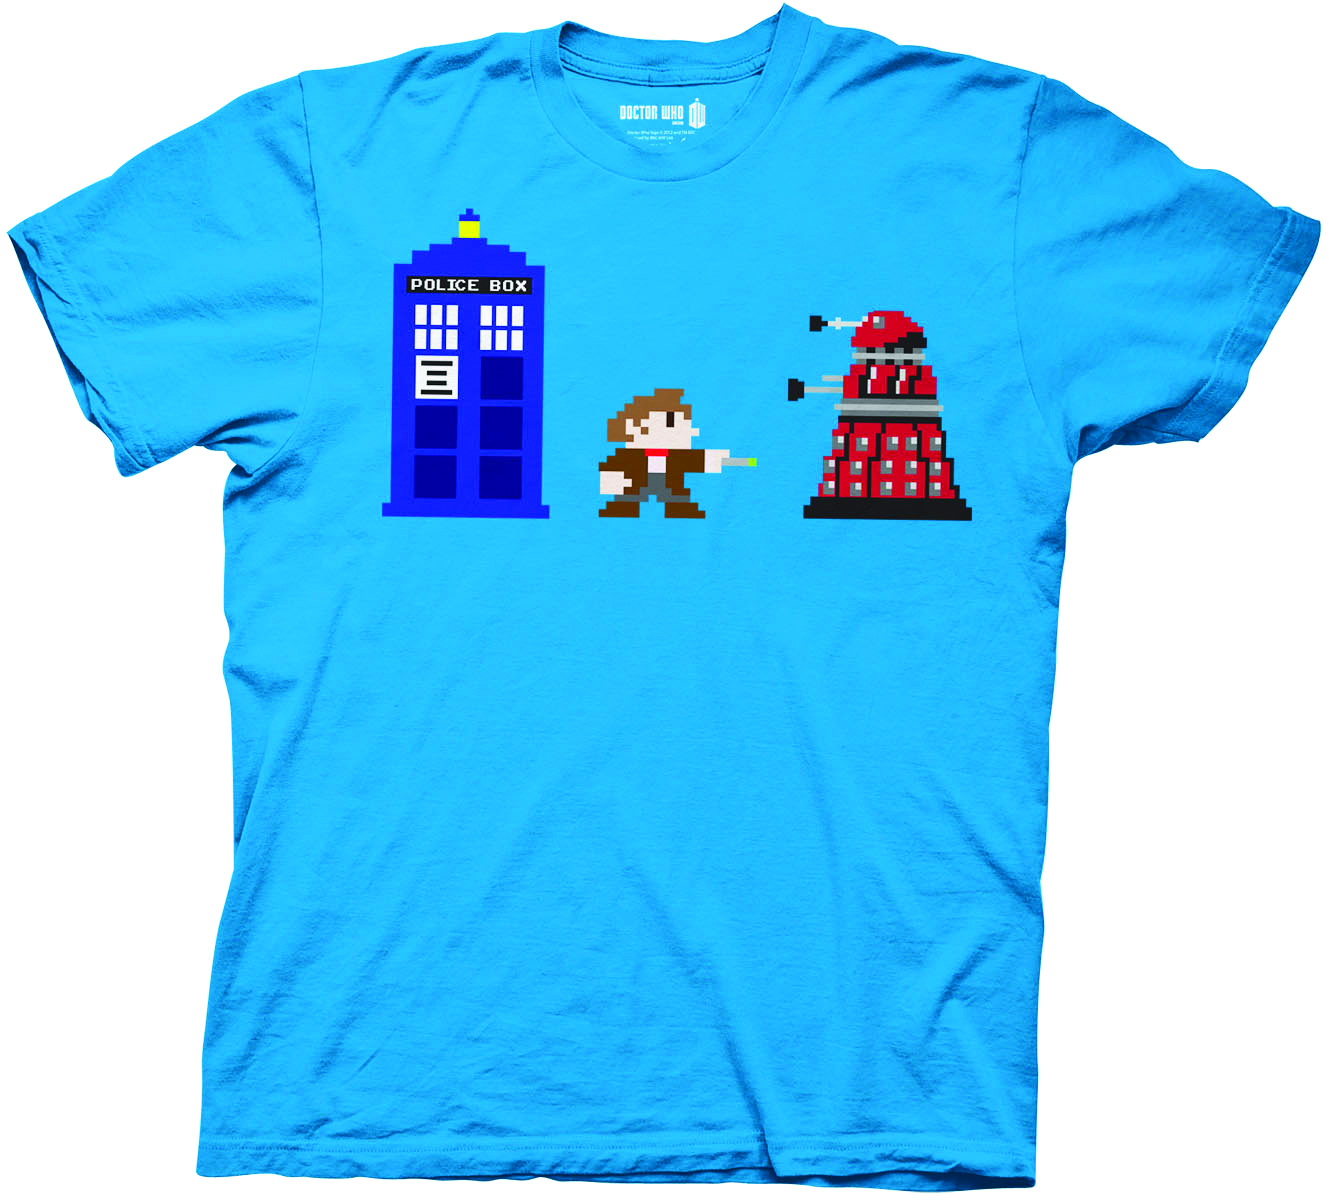 DOCTOR WHO 8 BIT PX TURQUOISE T/S XXL